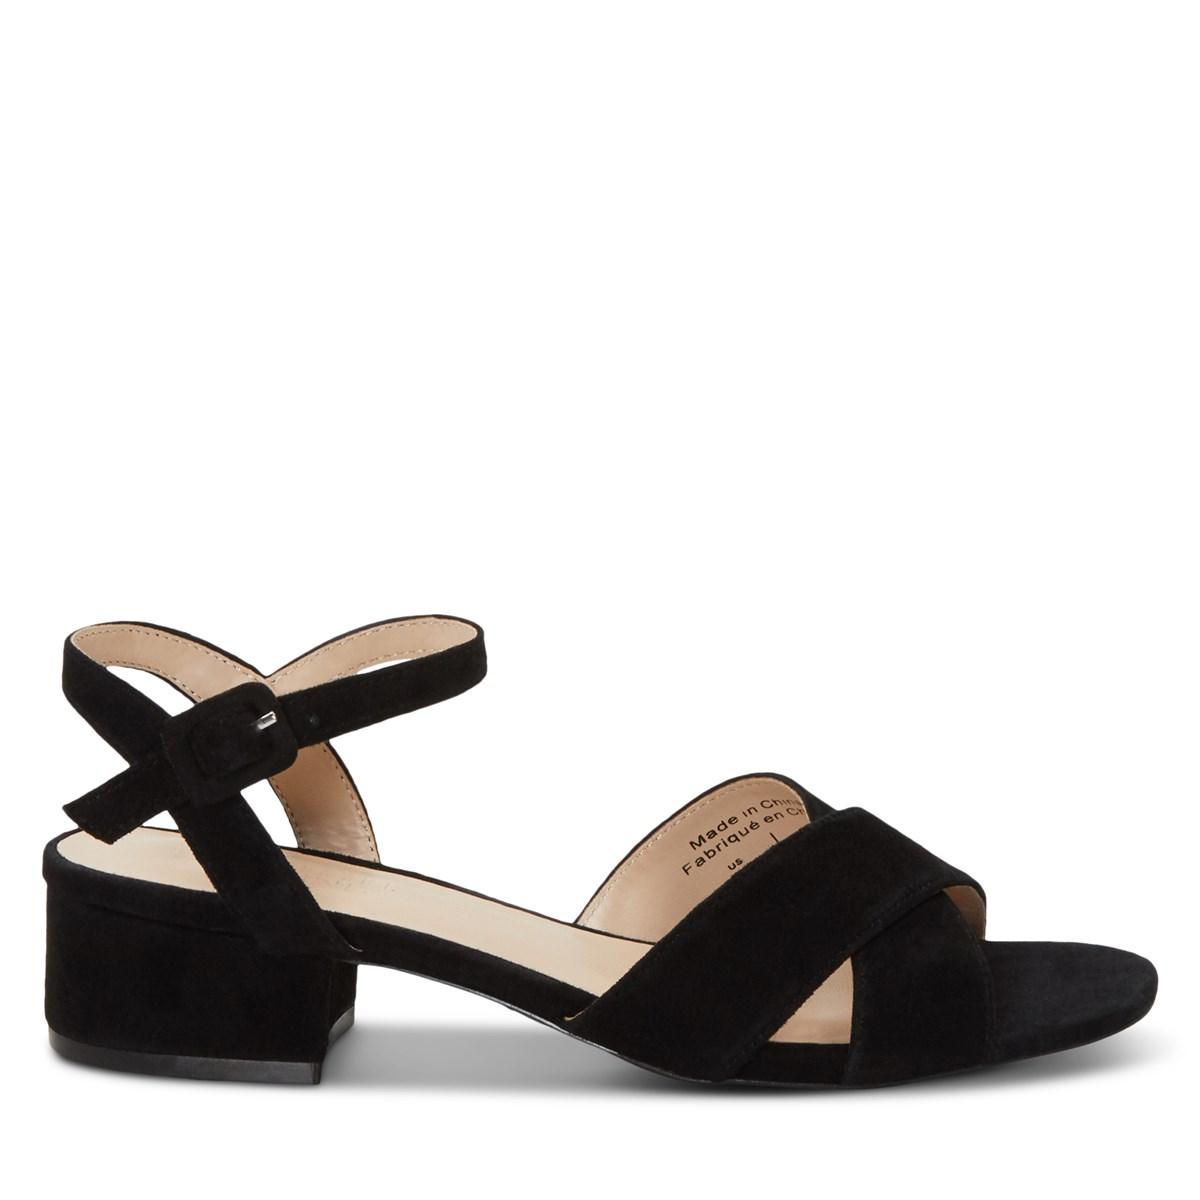 Women's Luna Sandals in Black